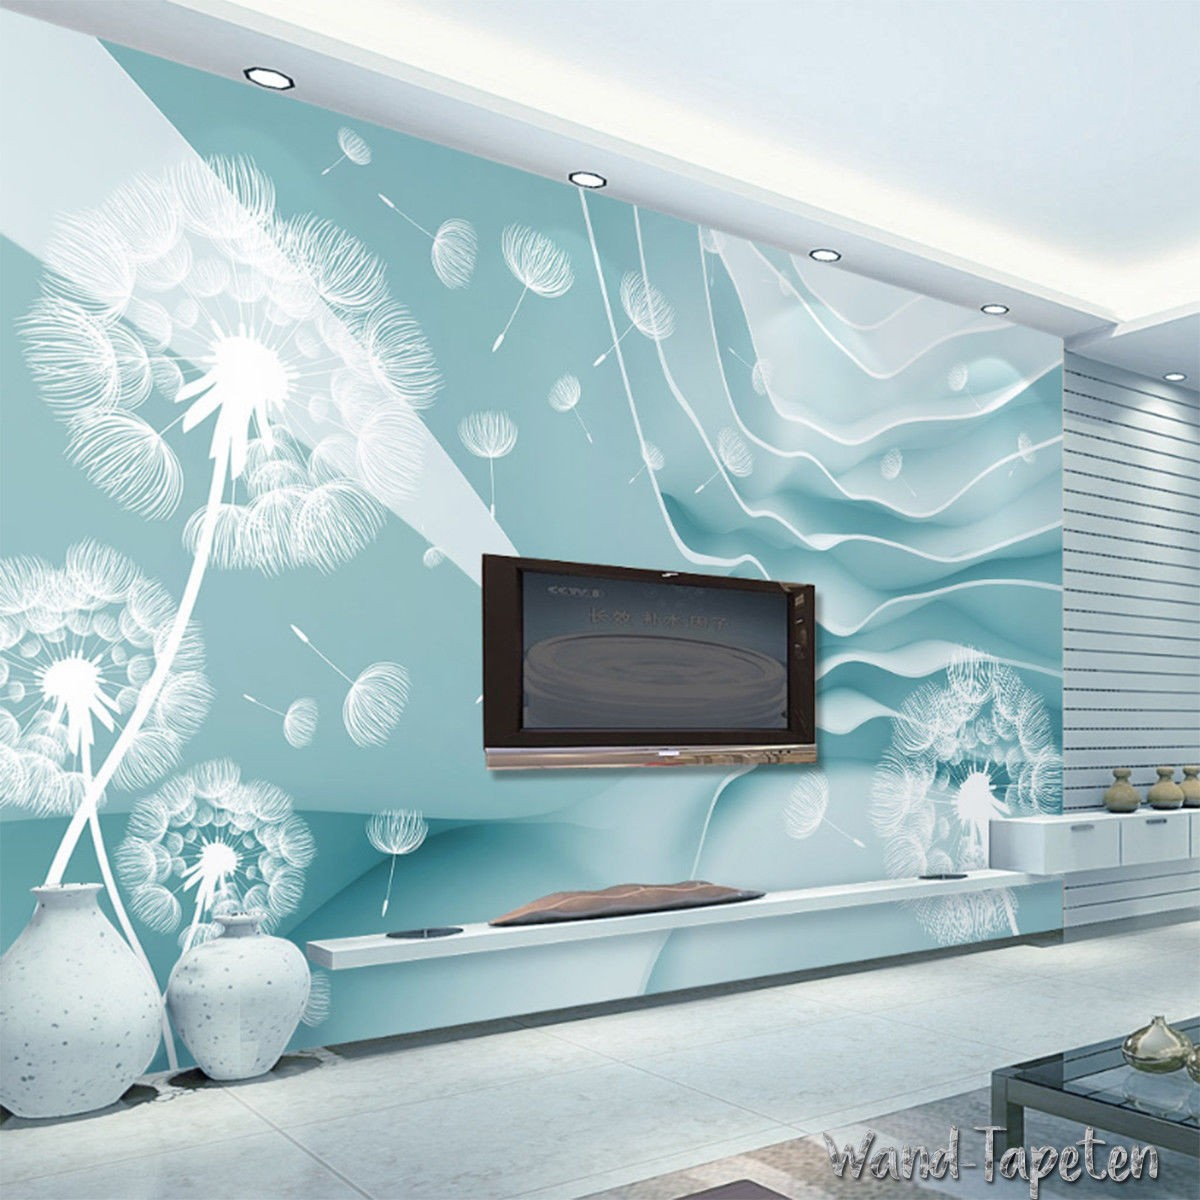 Vlies Fototapeten Wandtapeten Wandbilder 3d-dreidimensionale - Living Room Wall Decorations Ideas , HD Wallpaper & Backgrounds